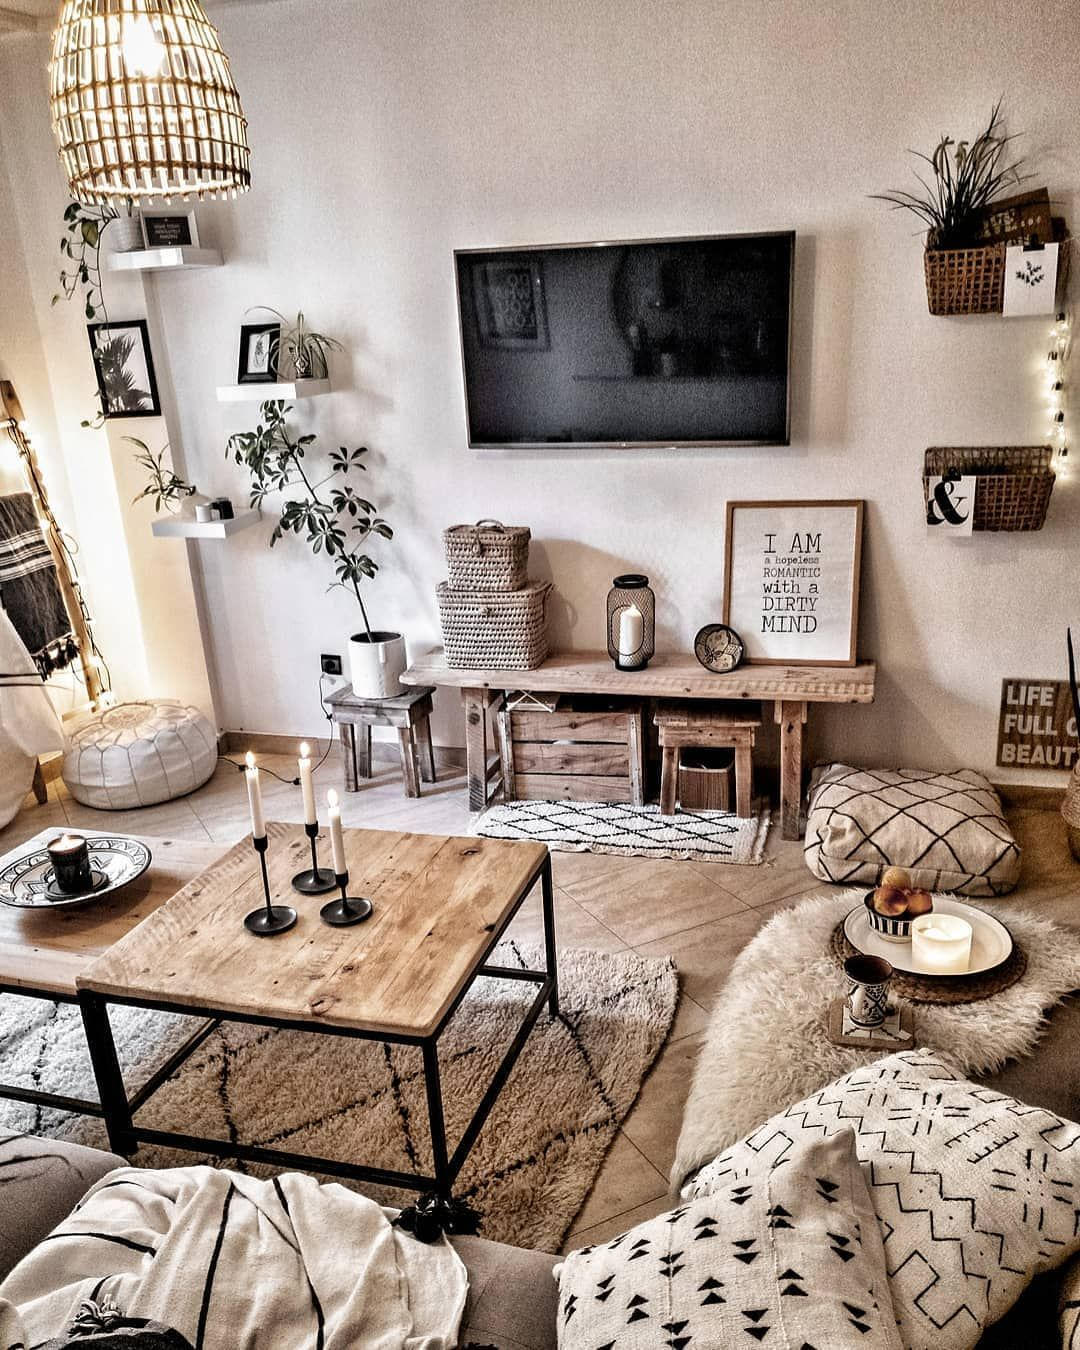 Cozi Homes On Instagram We Love This Boho Feel What Do You Think Of This Decor Sty Living Room Decor Modern Apartment Living Room Design Rustic Living Room